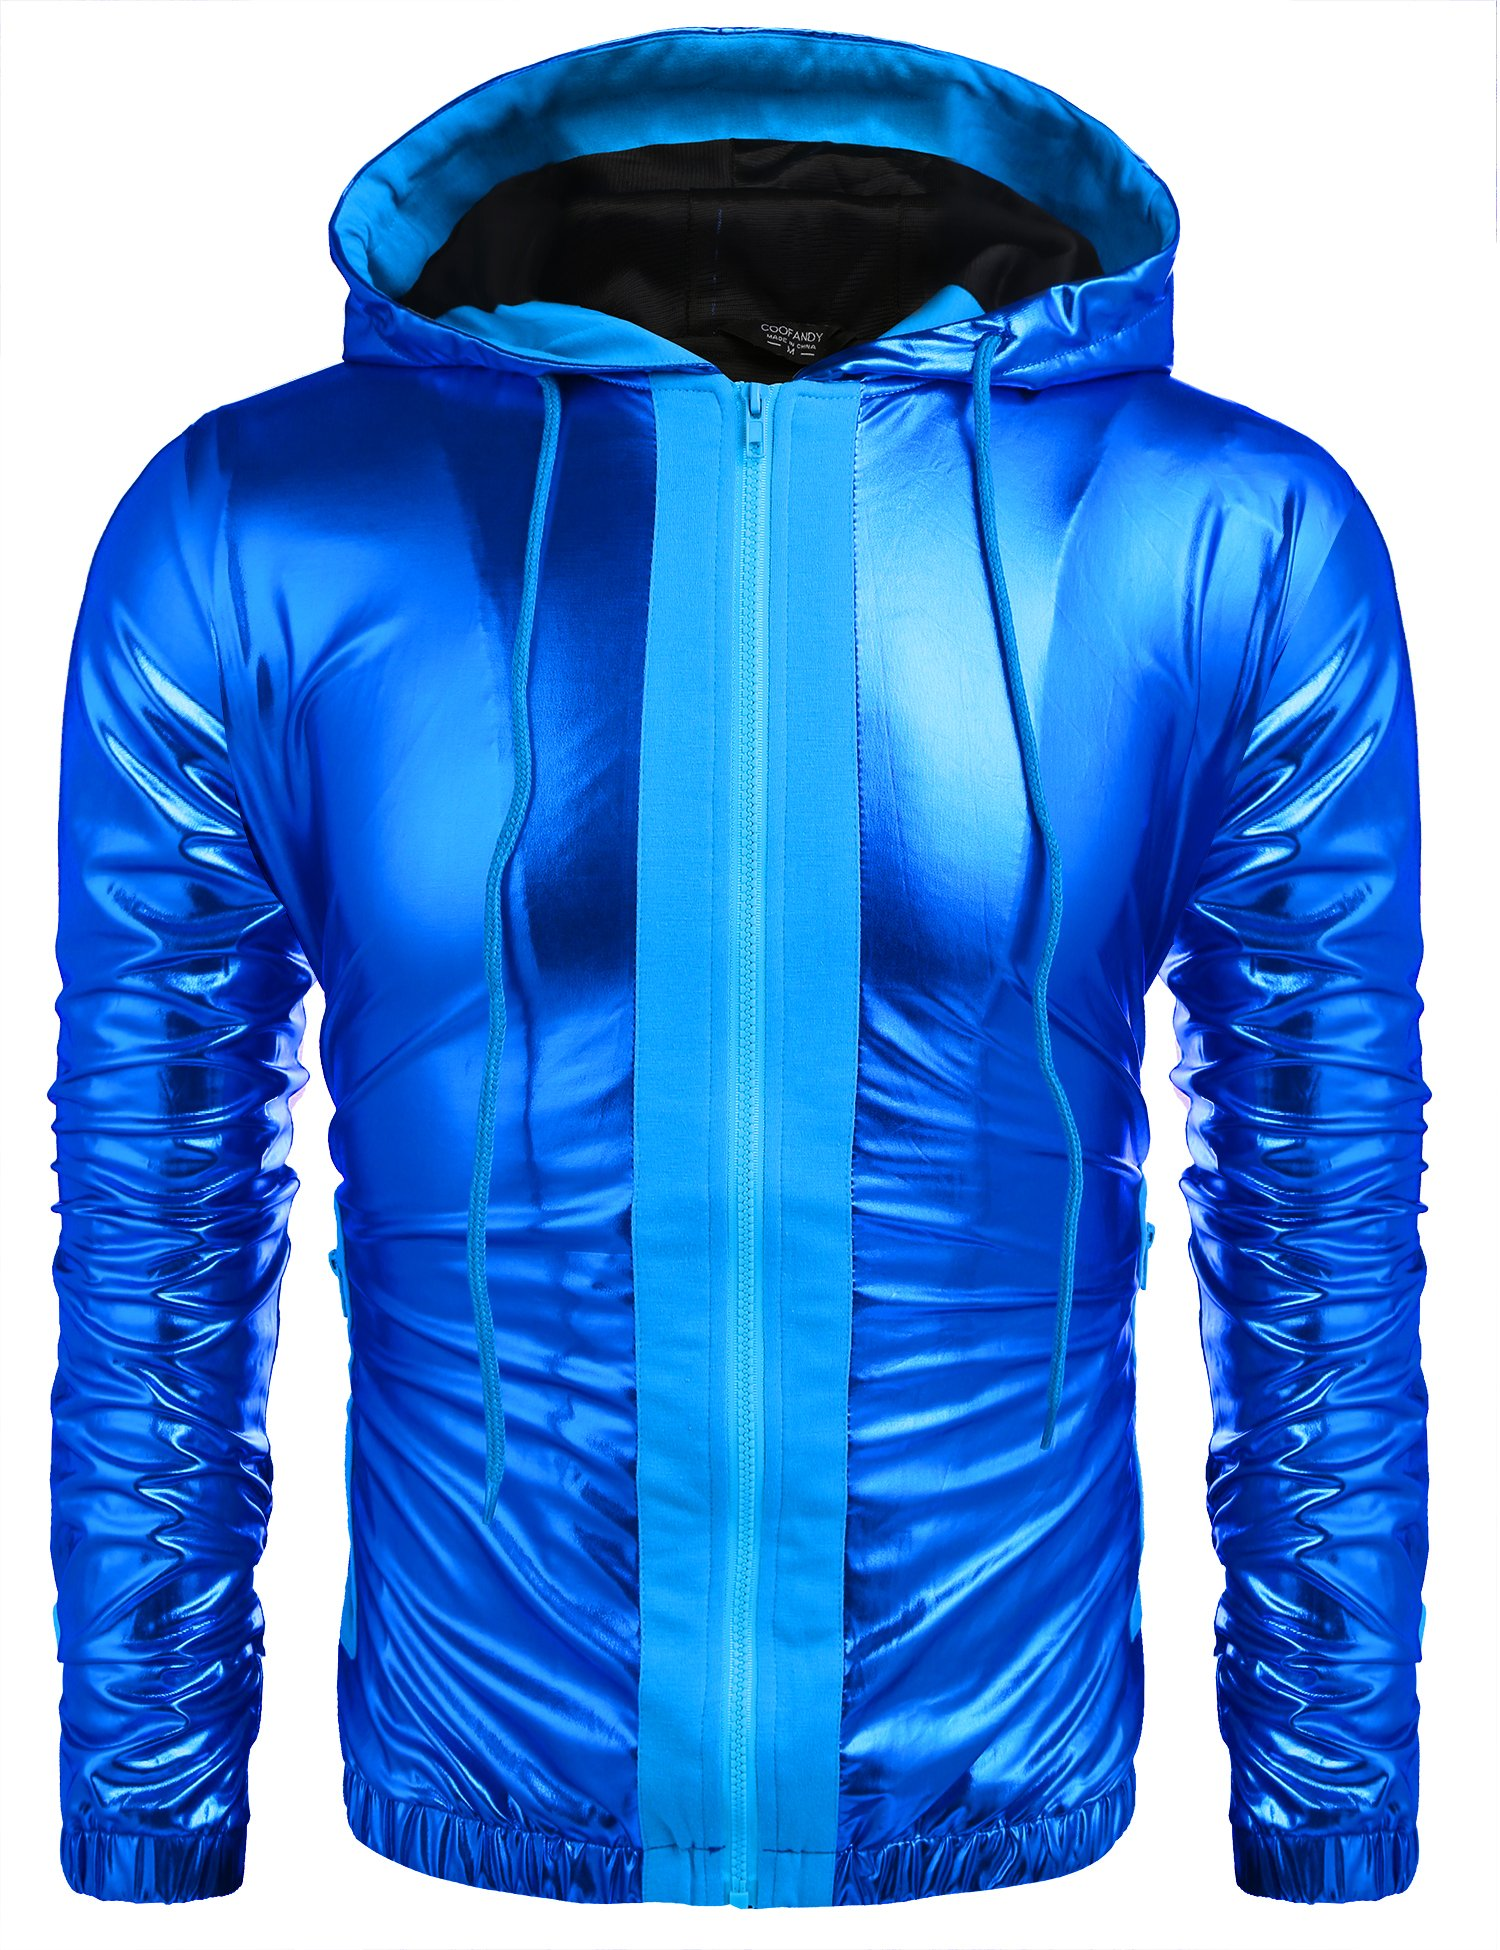 COOFANDY Mens Metallic Nightclub Style Hooded Varsity Baseball Bomber Jacket Golden&Silver&Blue by COOFANDY